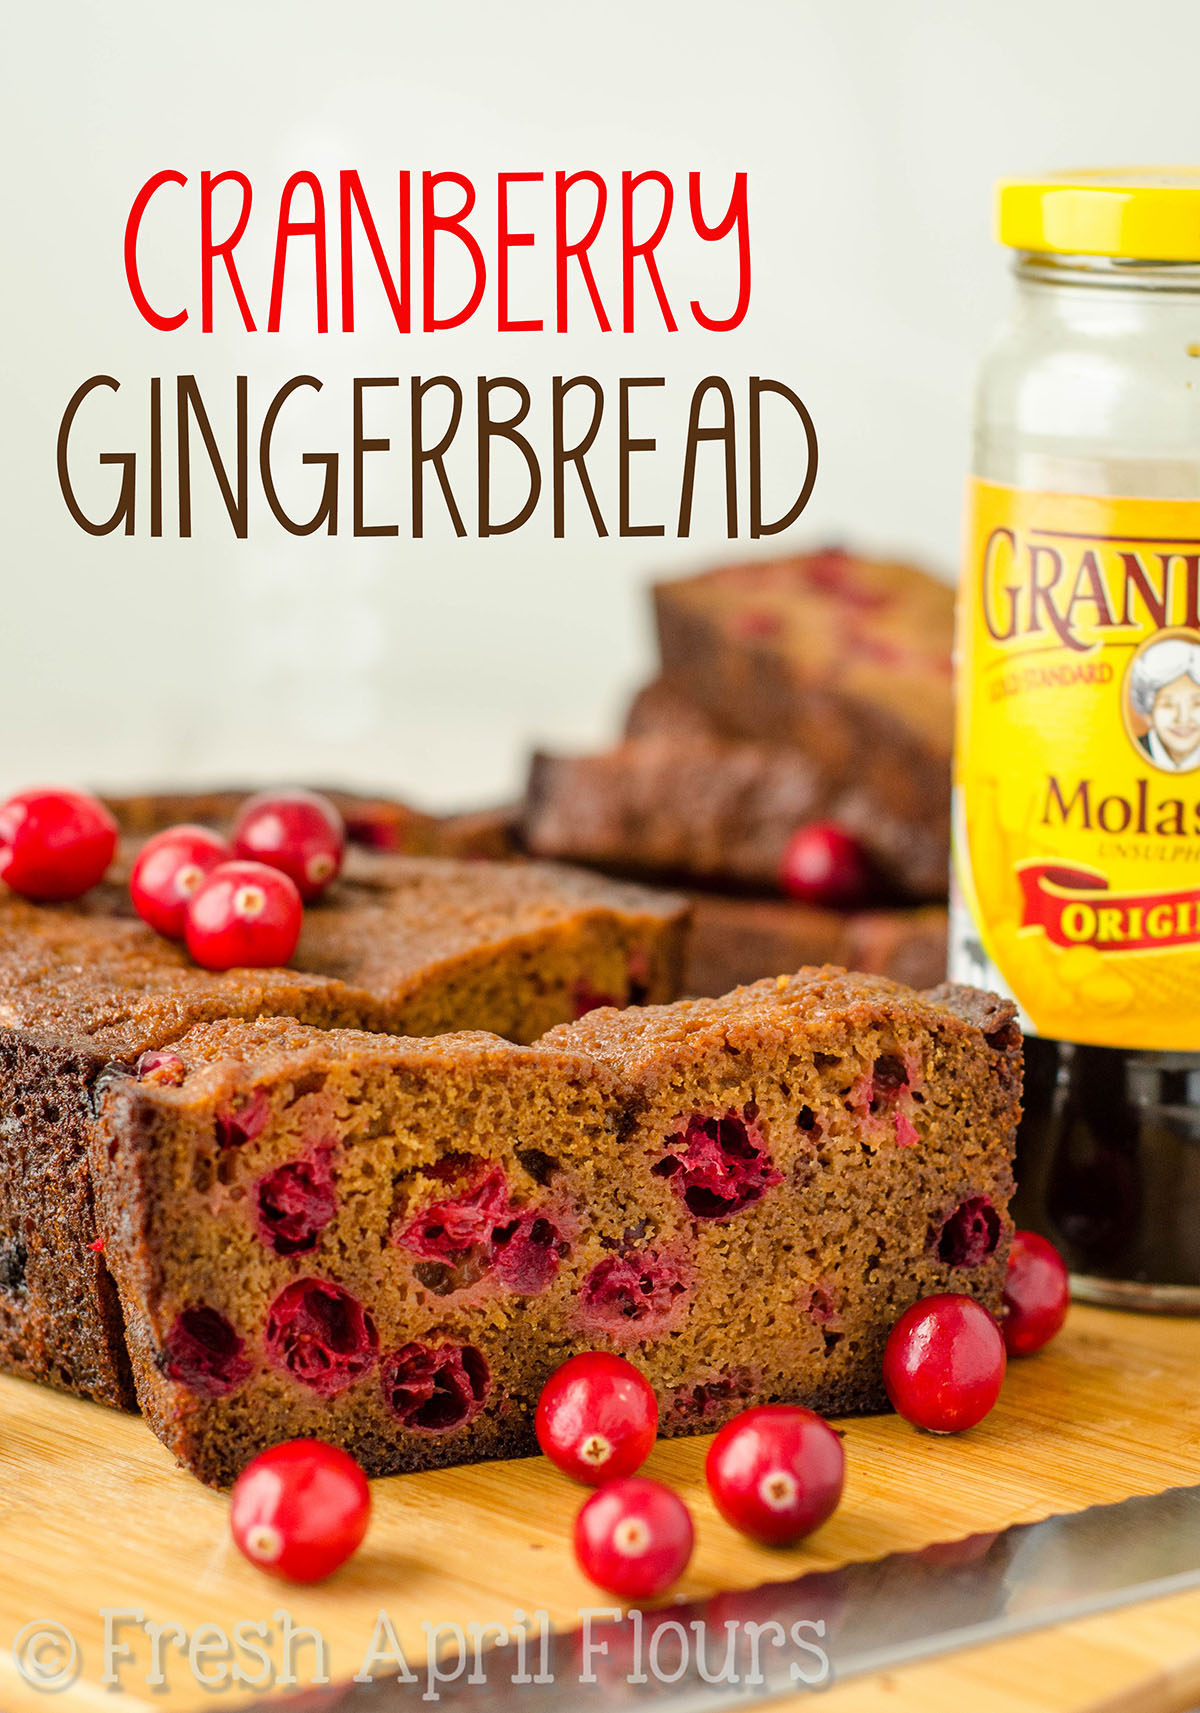 Cranberry Gingerbread: Perfectly tender and spicy quick bread studded with tart, juicy cranberries. Perfect for Thanksgiving, Christmas, or any day in between!